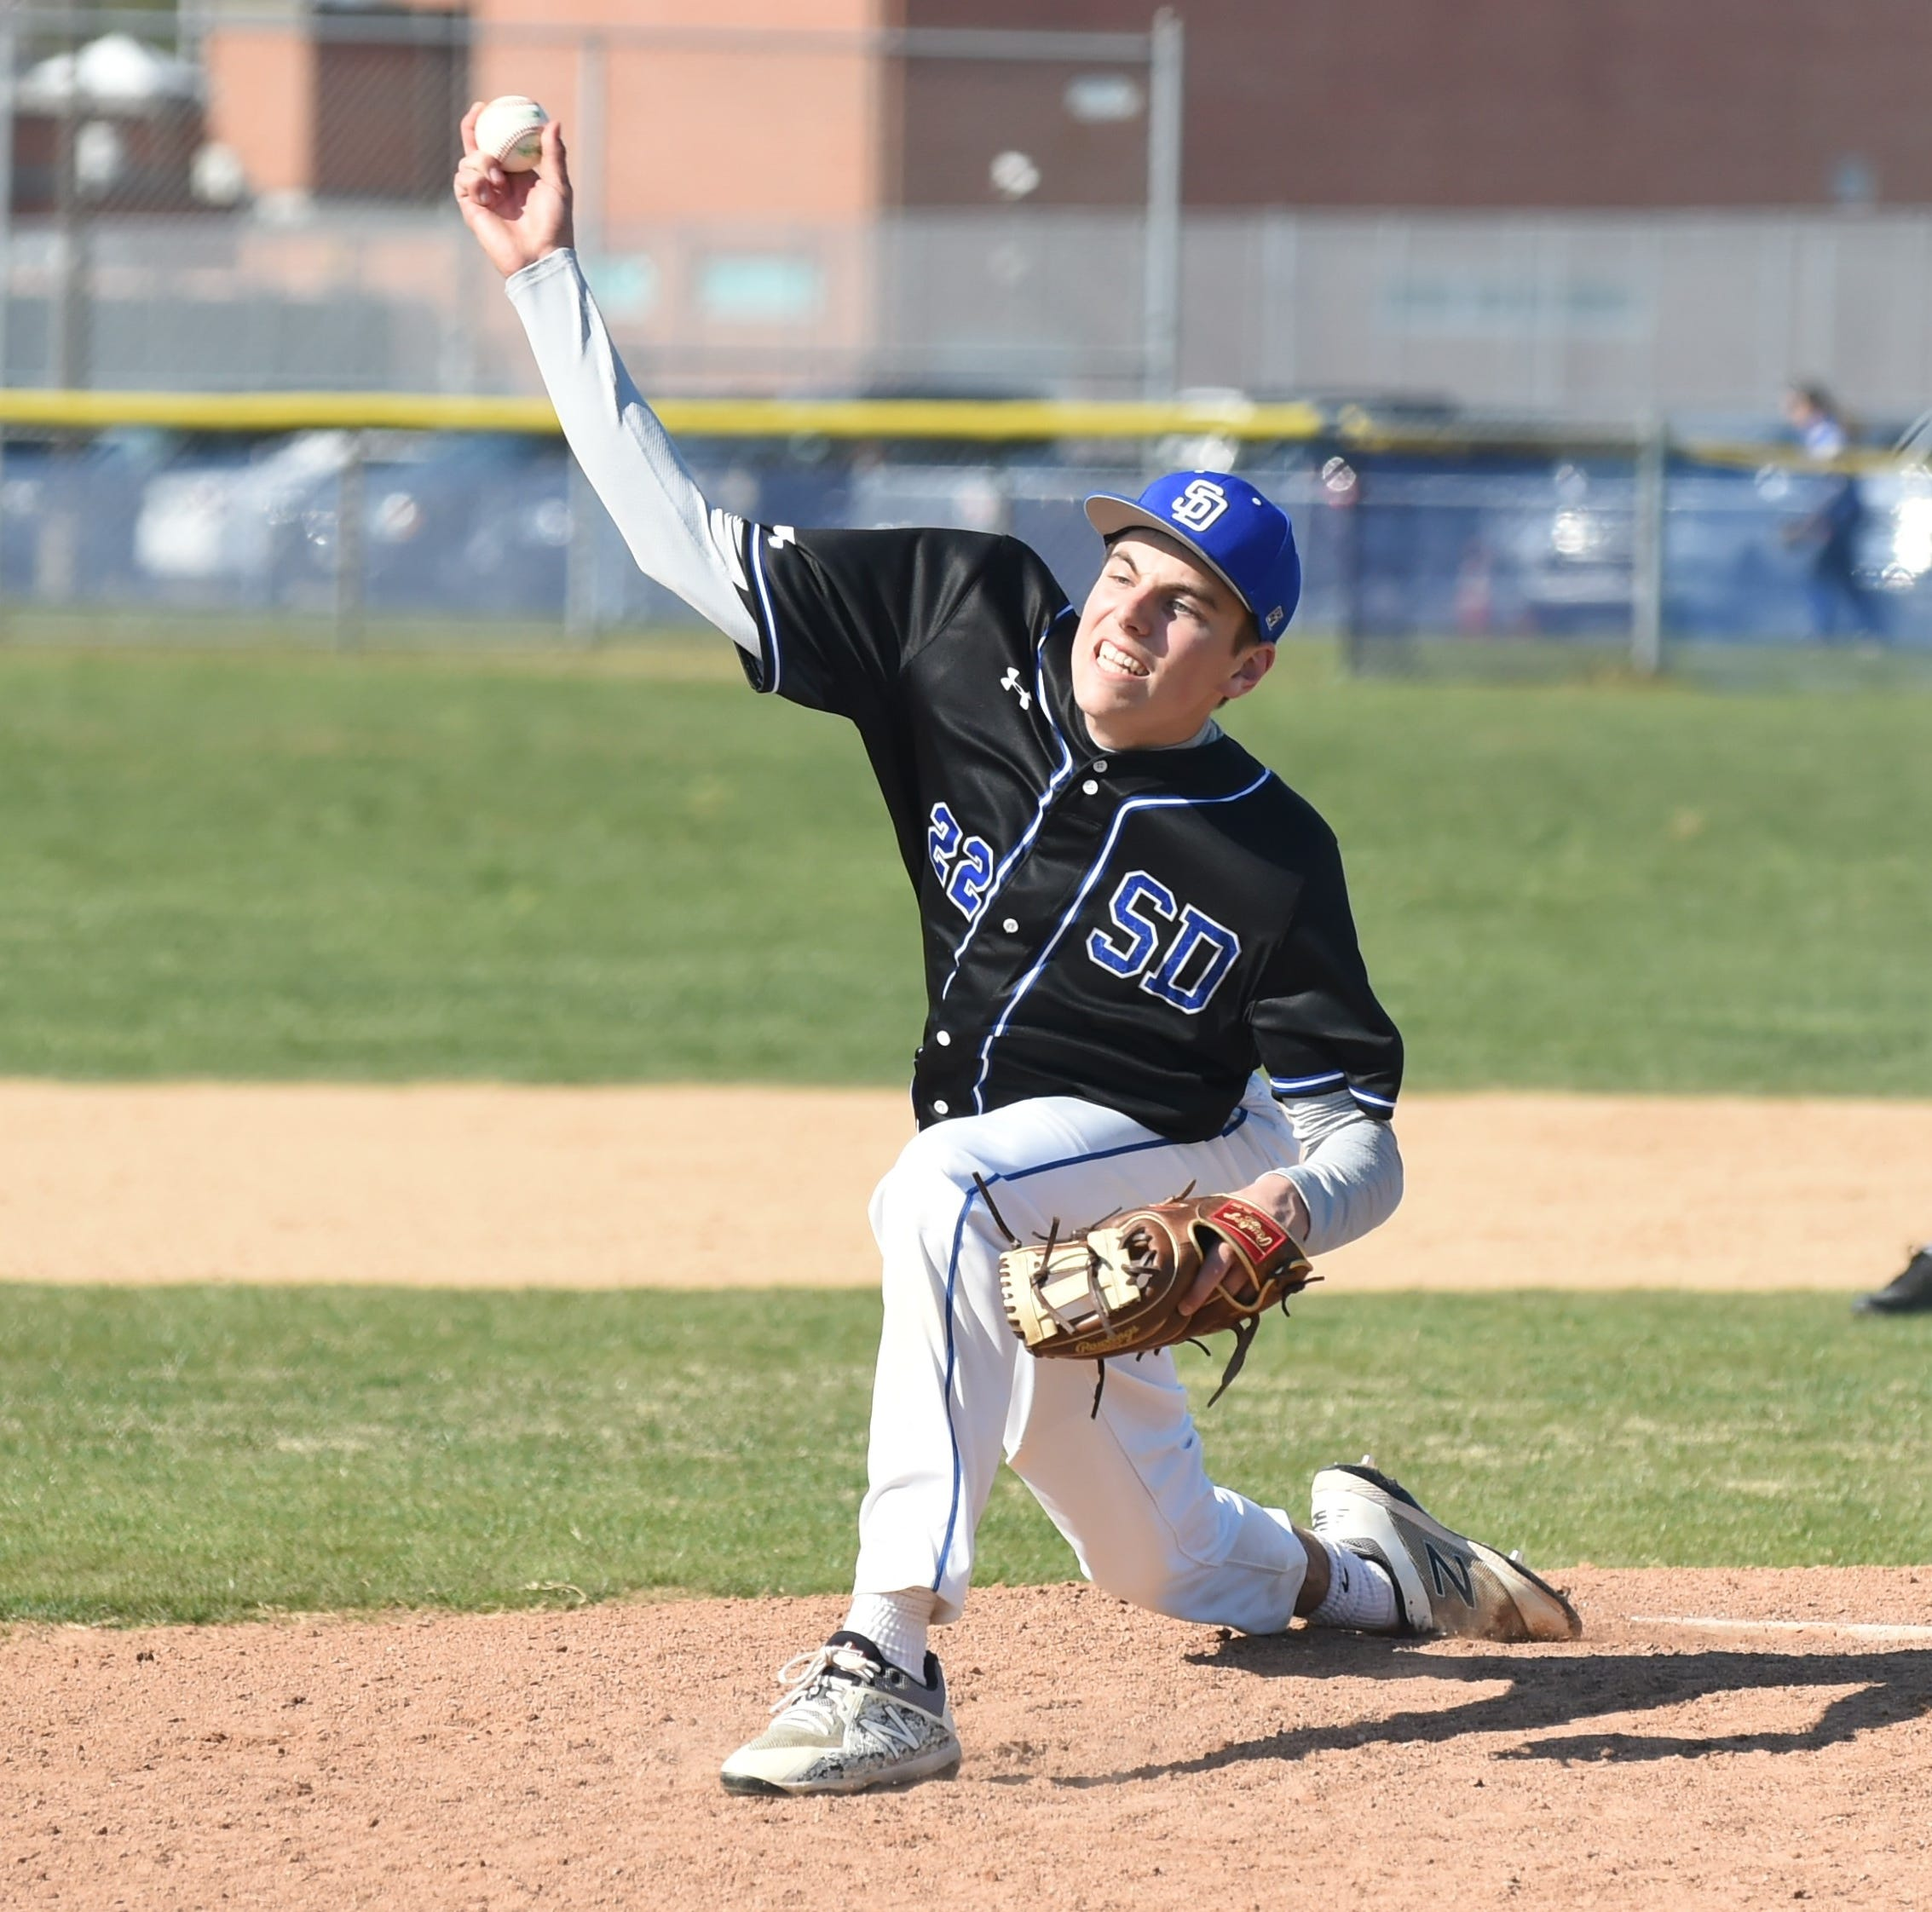 Stephen Decatur pitcher Hayden Snelsire hopes for memorable final season